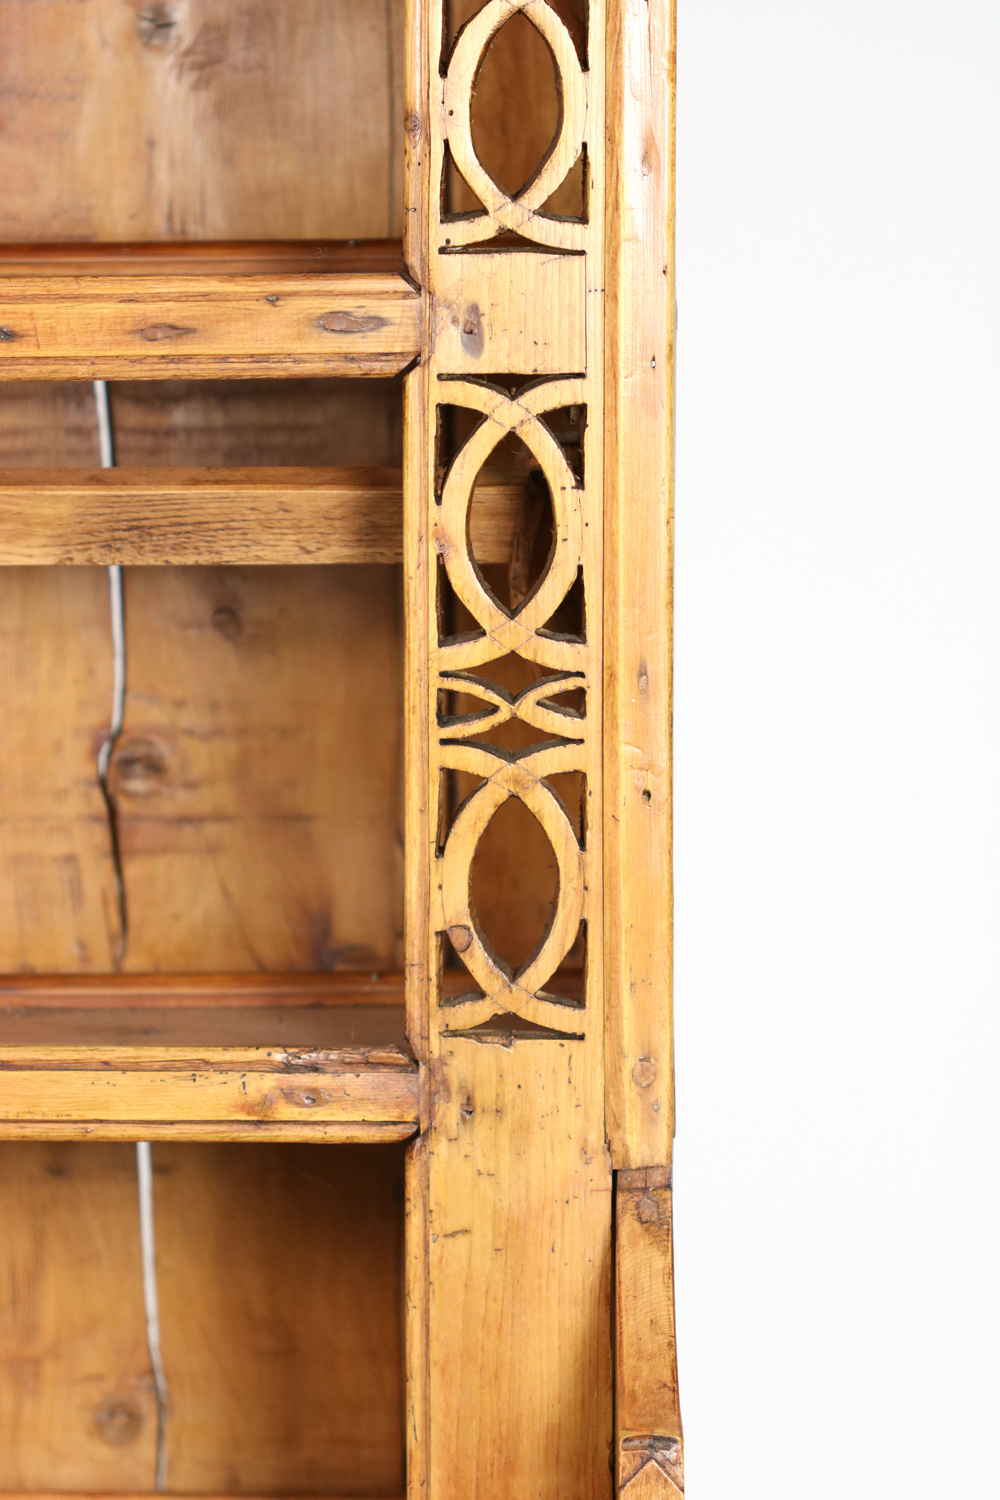 Wonderful Antique Pine Plate Rack Photos - Best Image Engine .  sc 1 st  Mypromoisrich.com & Dorable Decorative Wall Plate Racks Images - The Wall Art ...